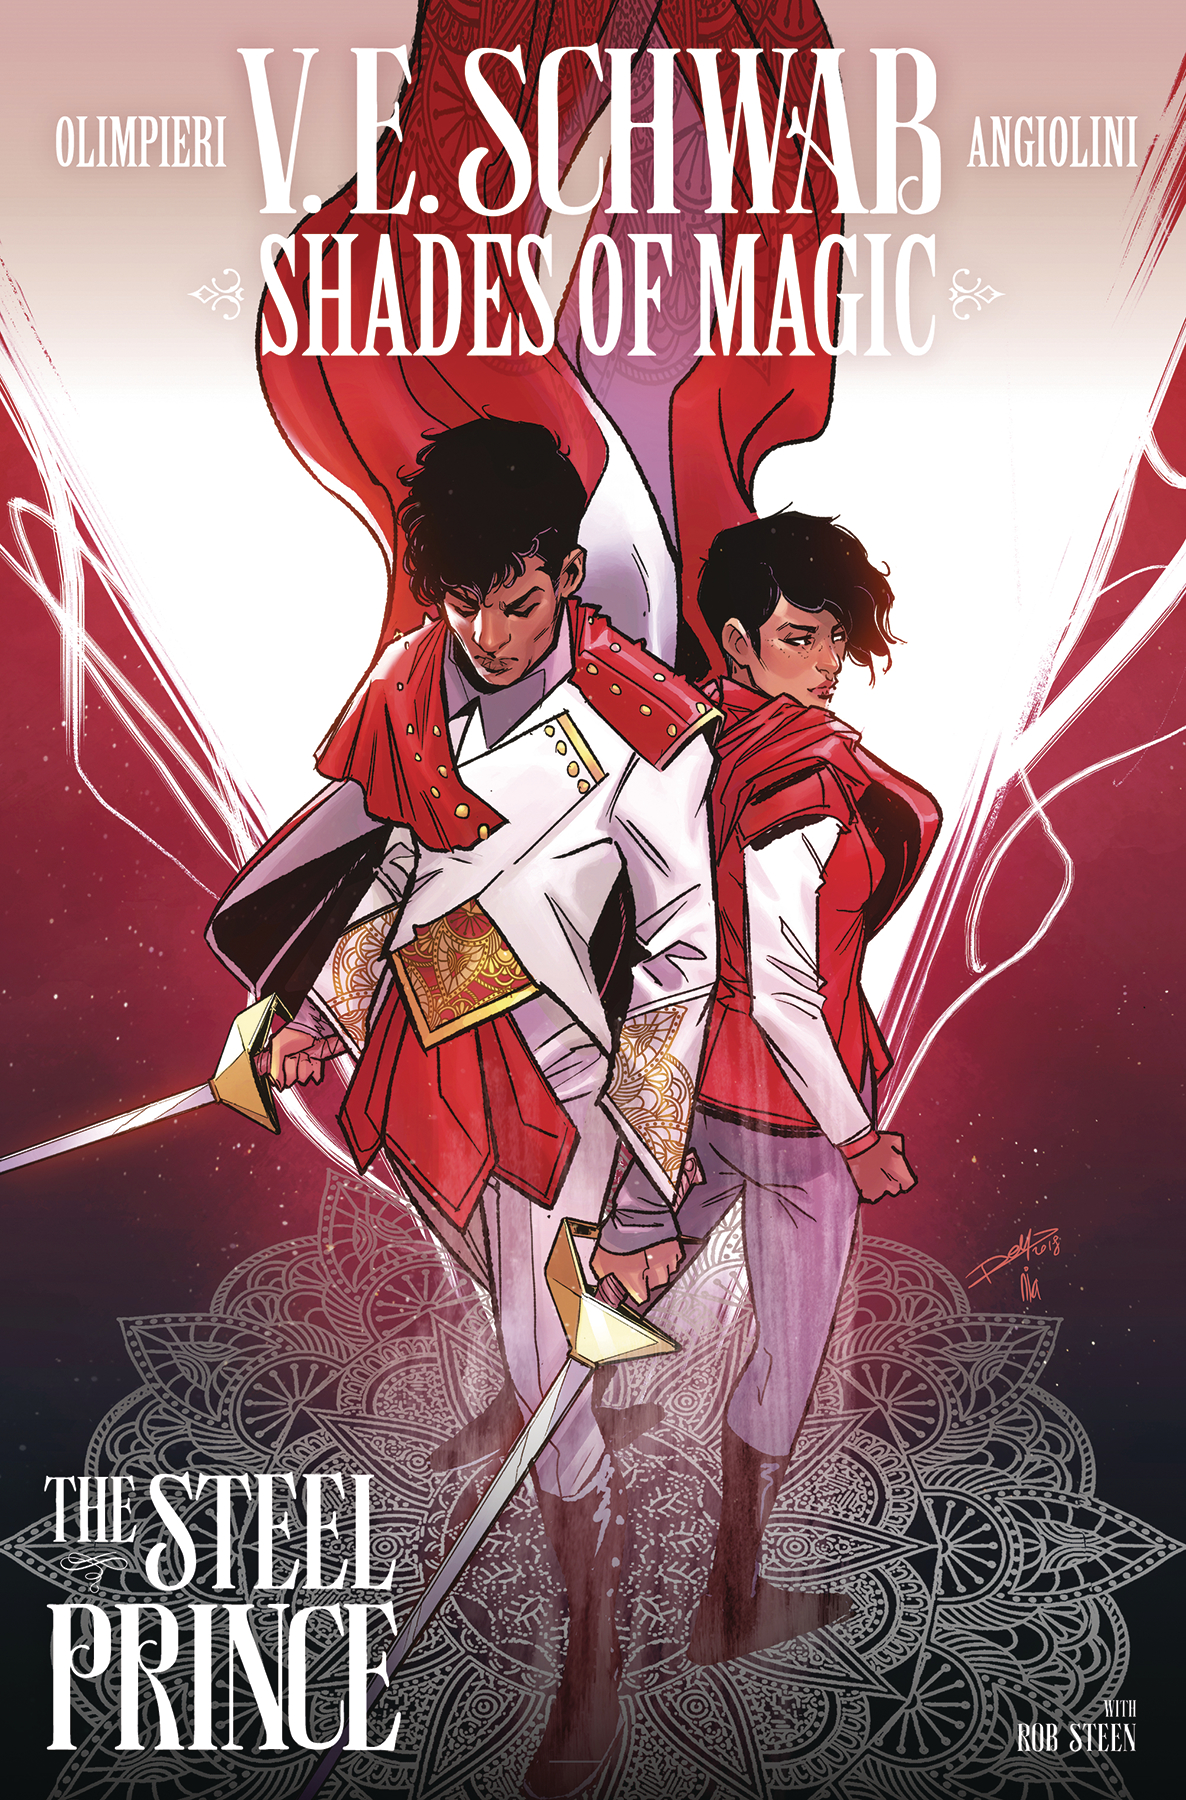 SHADES OF MAGIC #3 (OF 4) STEEL PRINCE CVR B INGRANATA